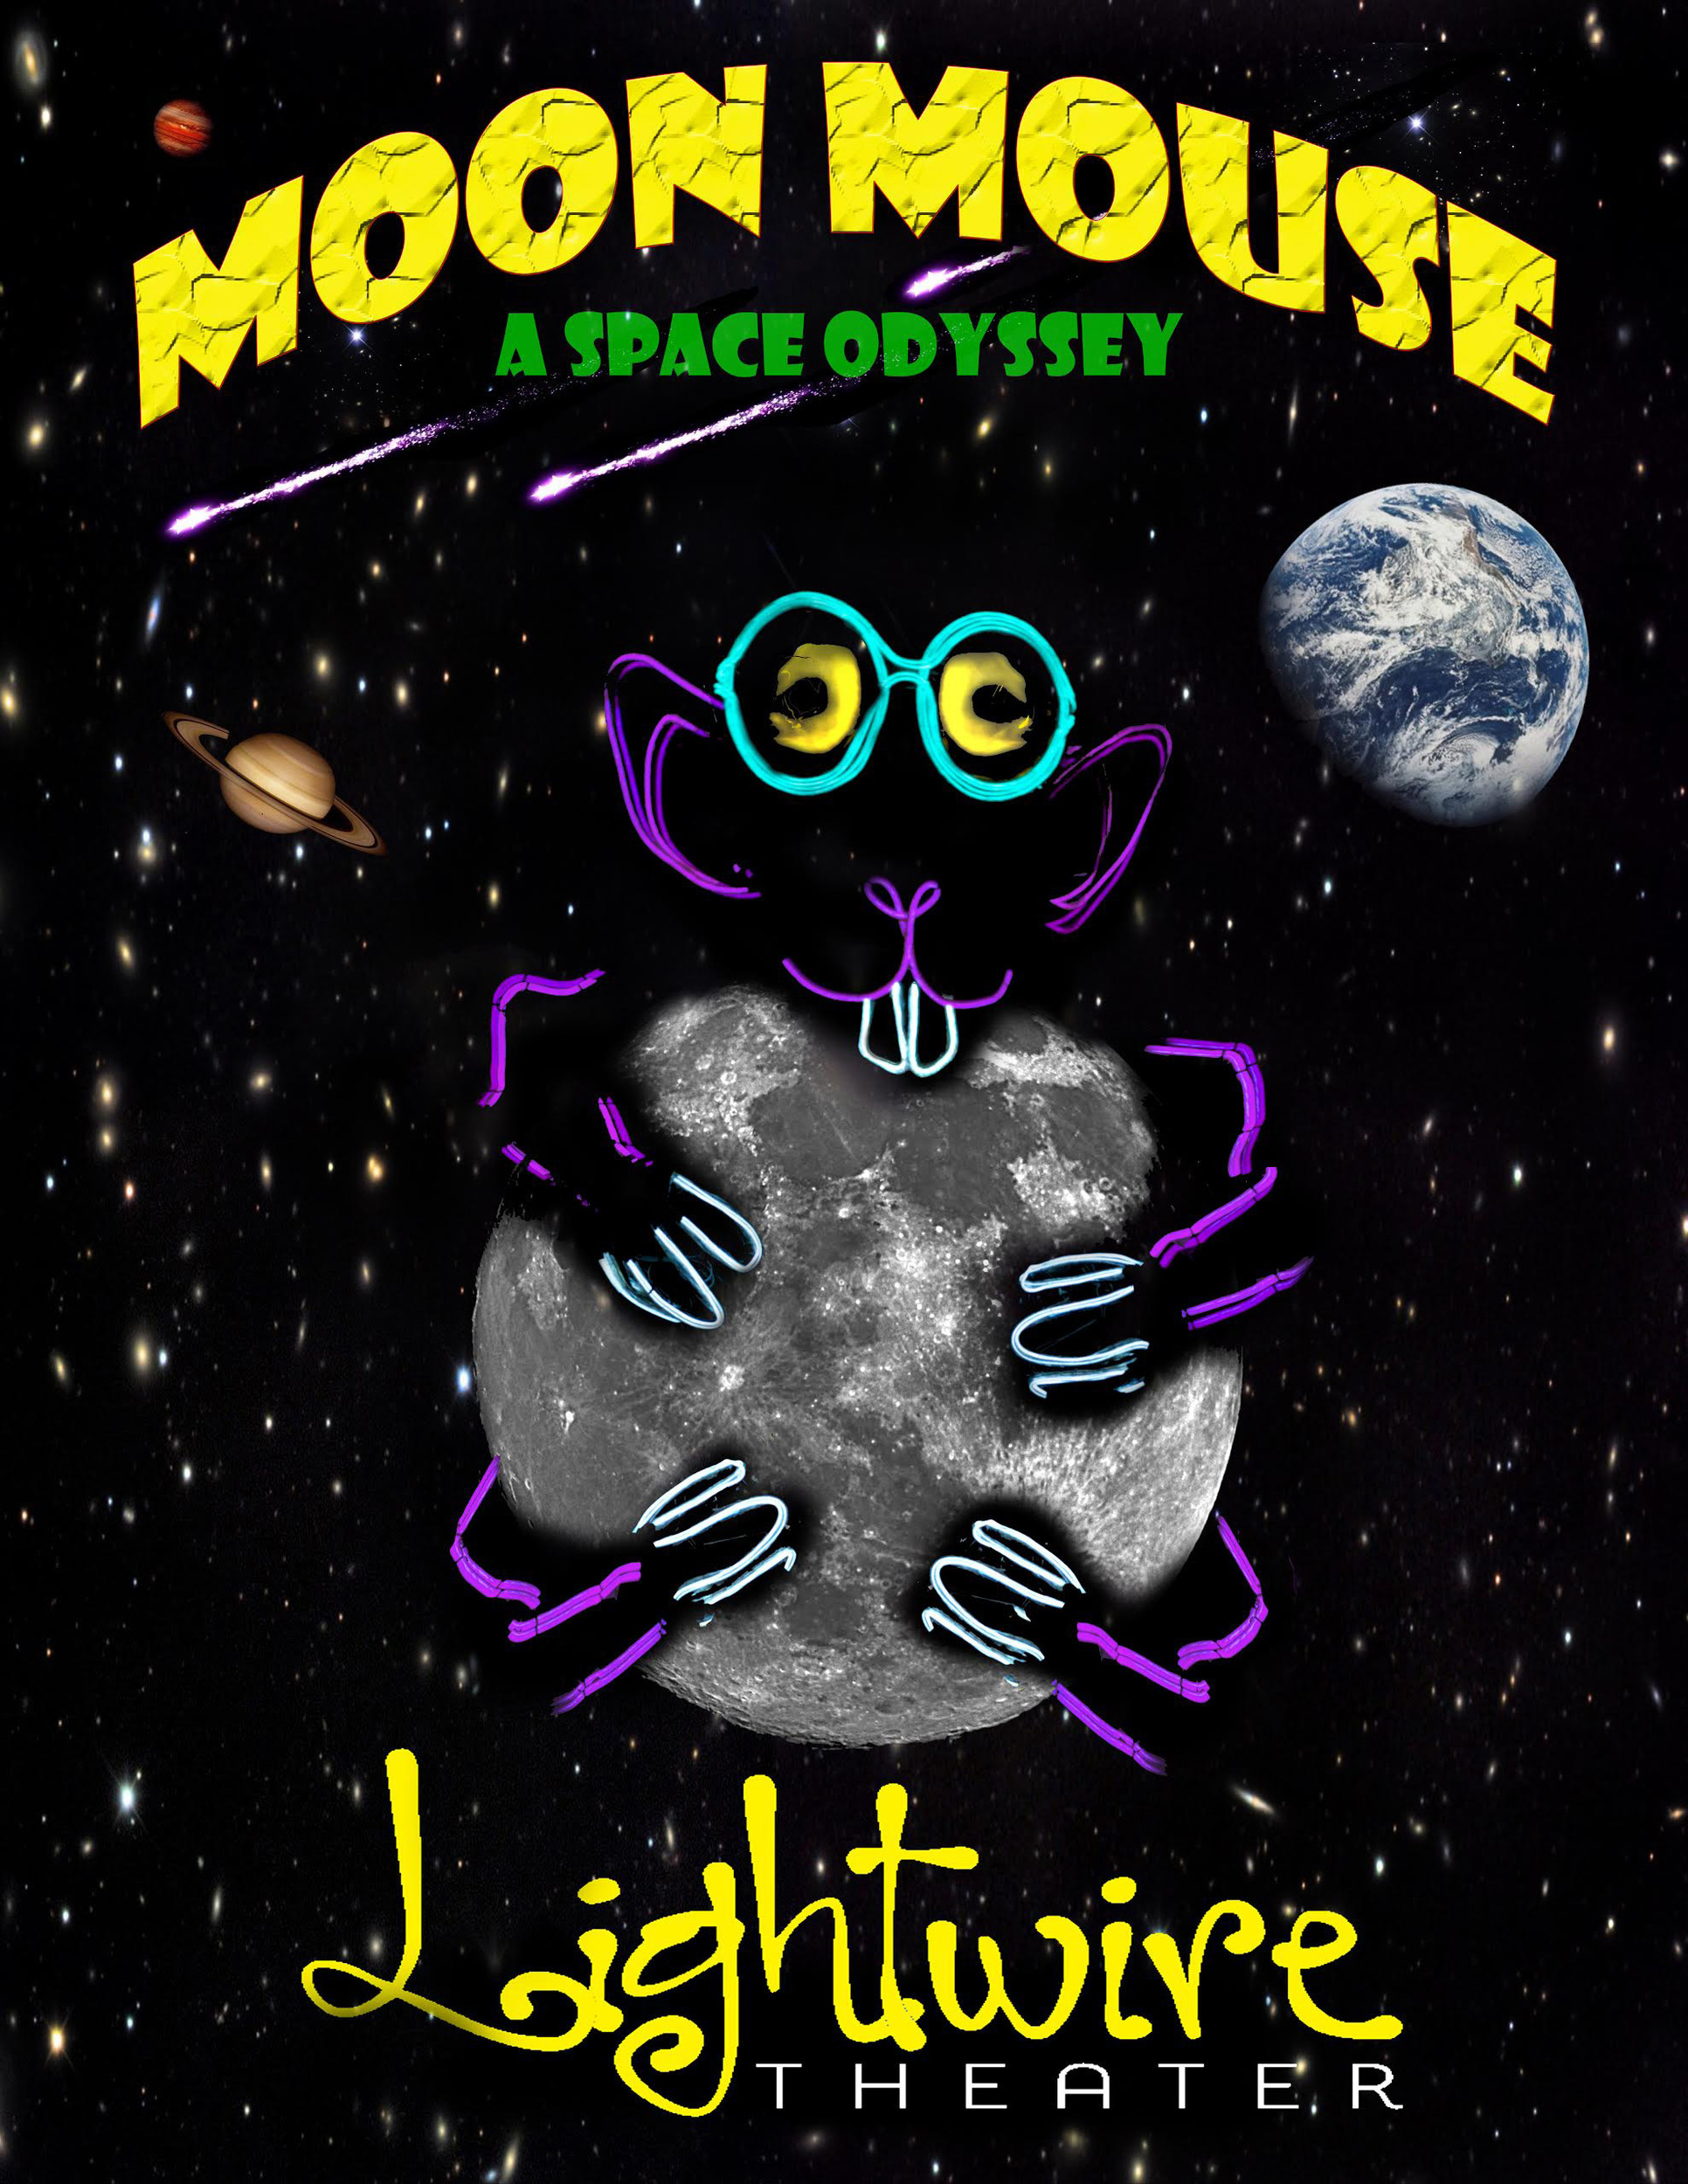 """Moon Mouse: A Space Odyssey"" will light up the Sumter Opera House with its glow-in-the-dark technology, theater and dance performance."